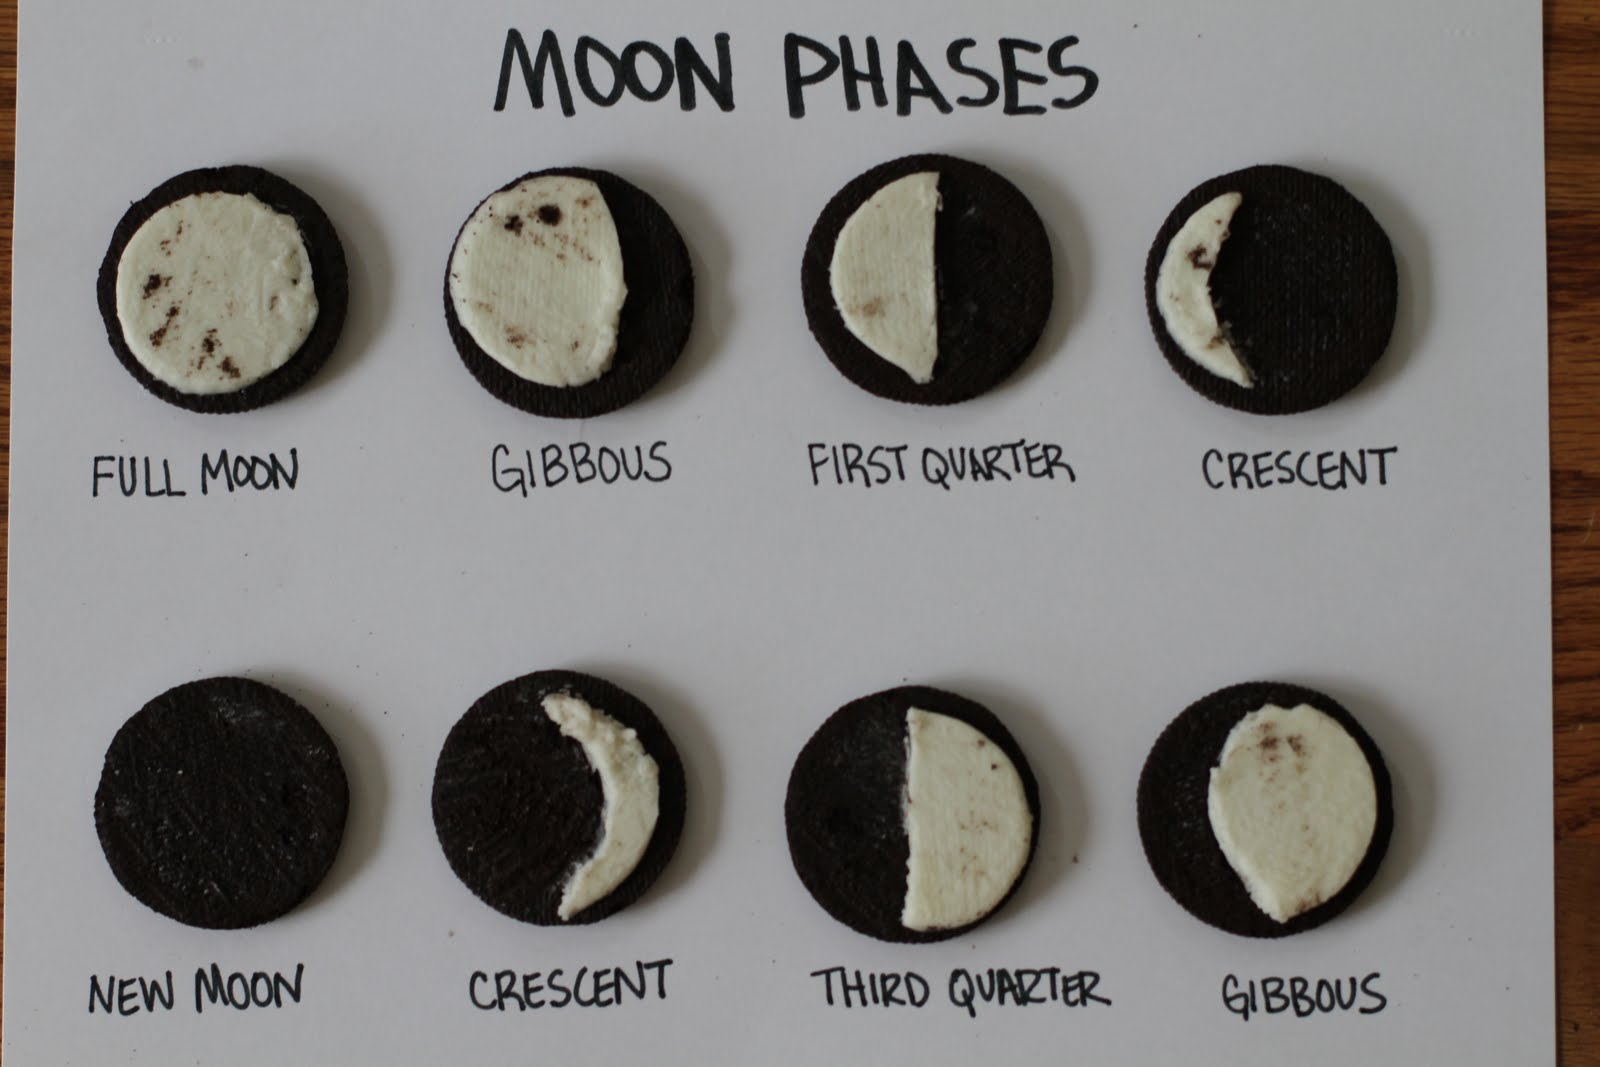 6 grade science astronomy unit information Moon Phases Diagram Blank Orksheets moon phase image